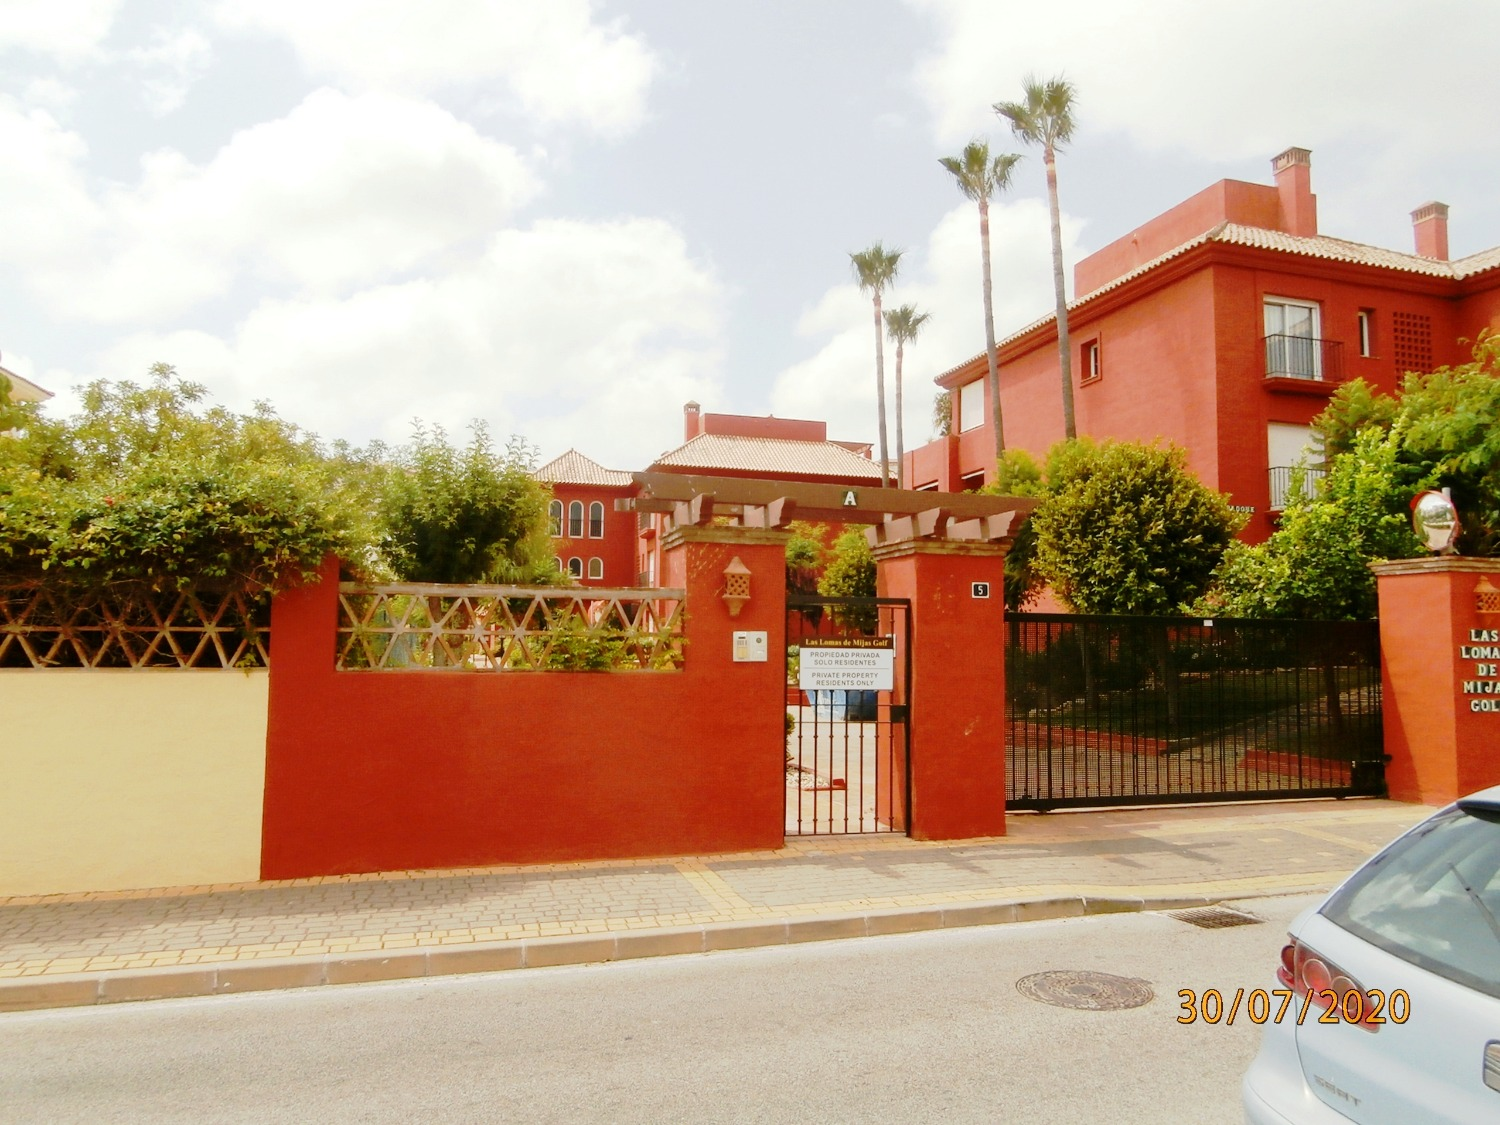 Excellent duplex penthouse very reduced price for quick a sale, located in exclusive gated community.